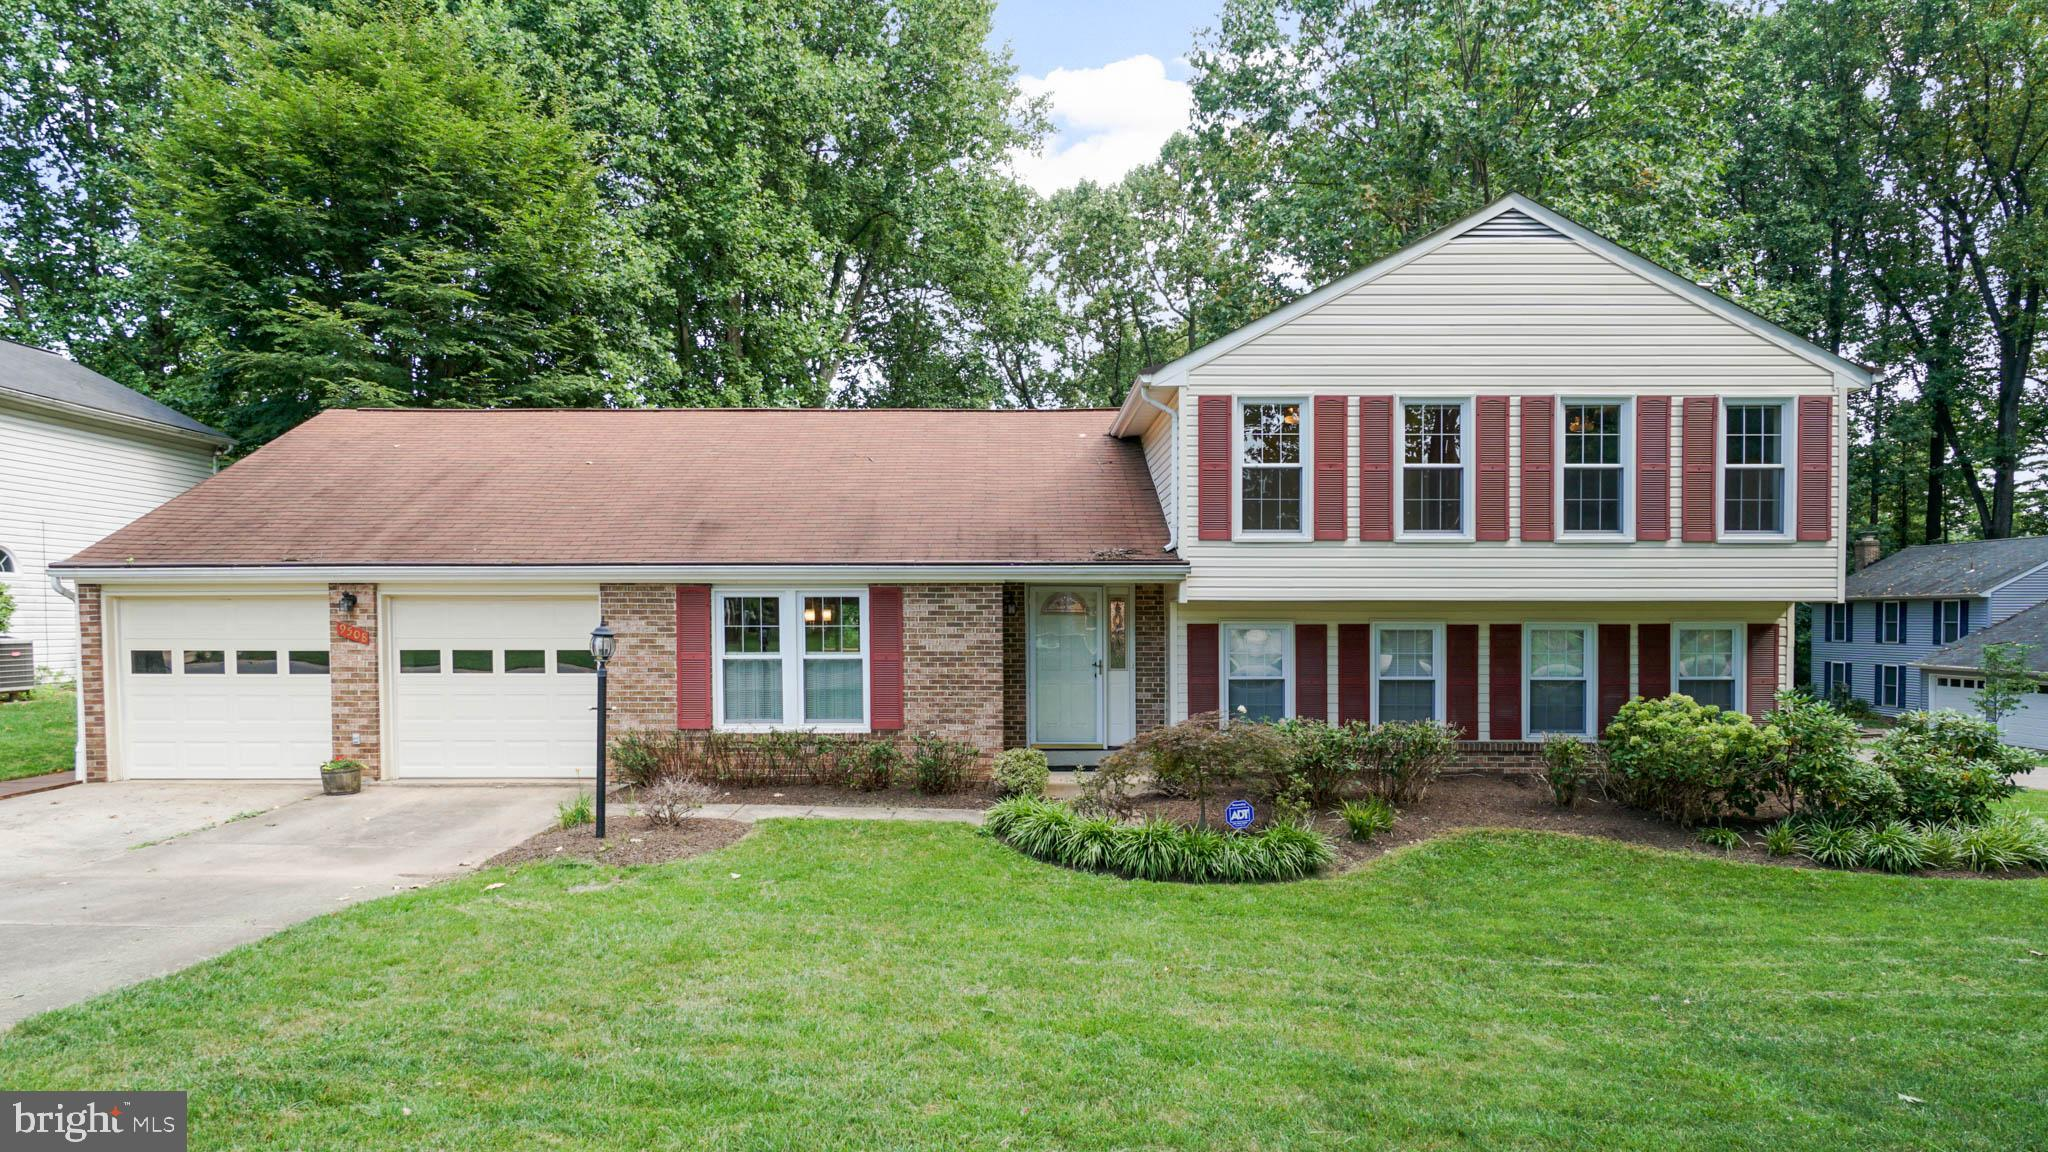 9508 SWEET GRASS RIDGE, COLUMBIA, MD 21046